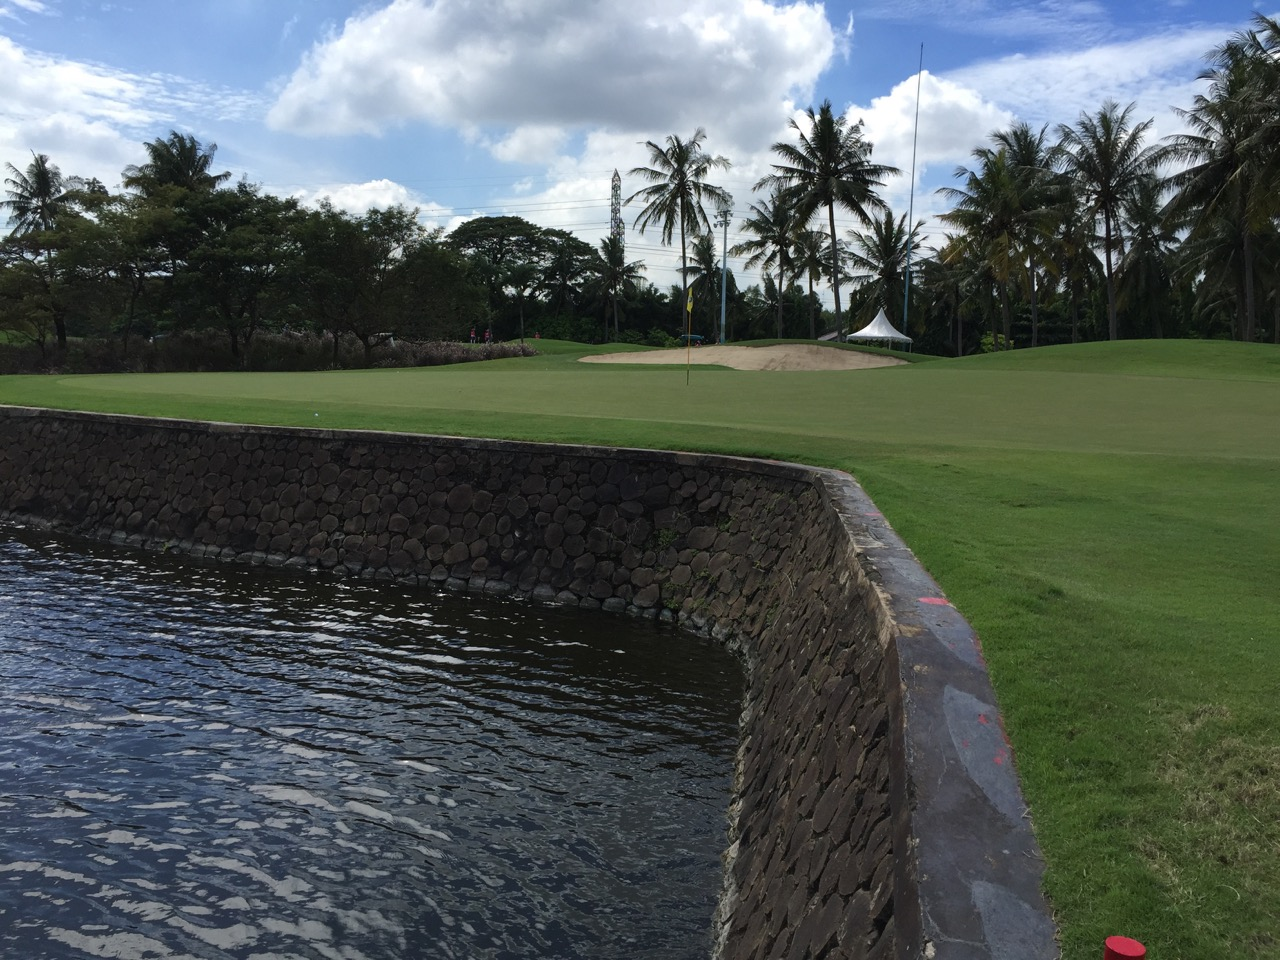 Damai Indah Golf-( PIK ) course- water is a major hazard...